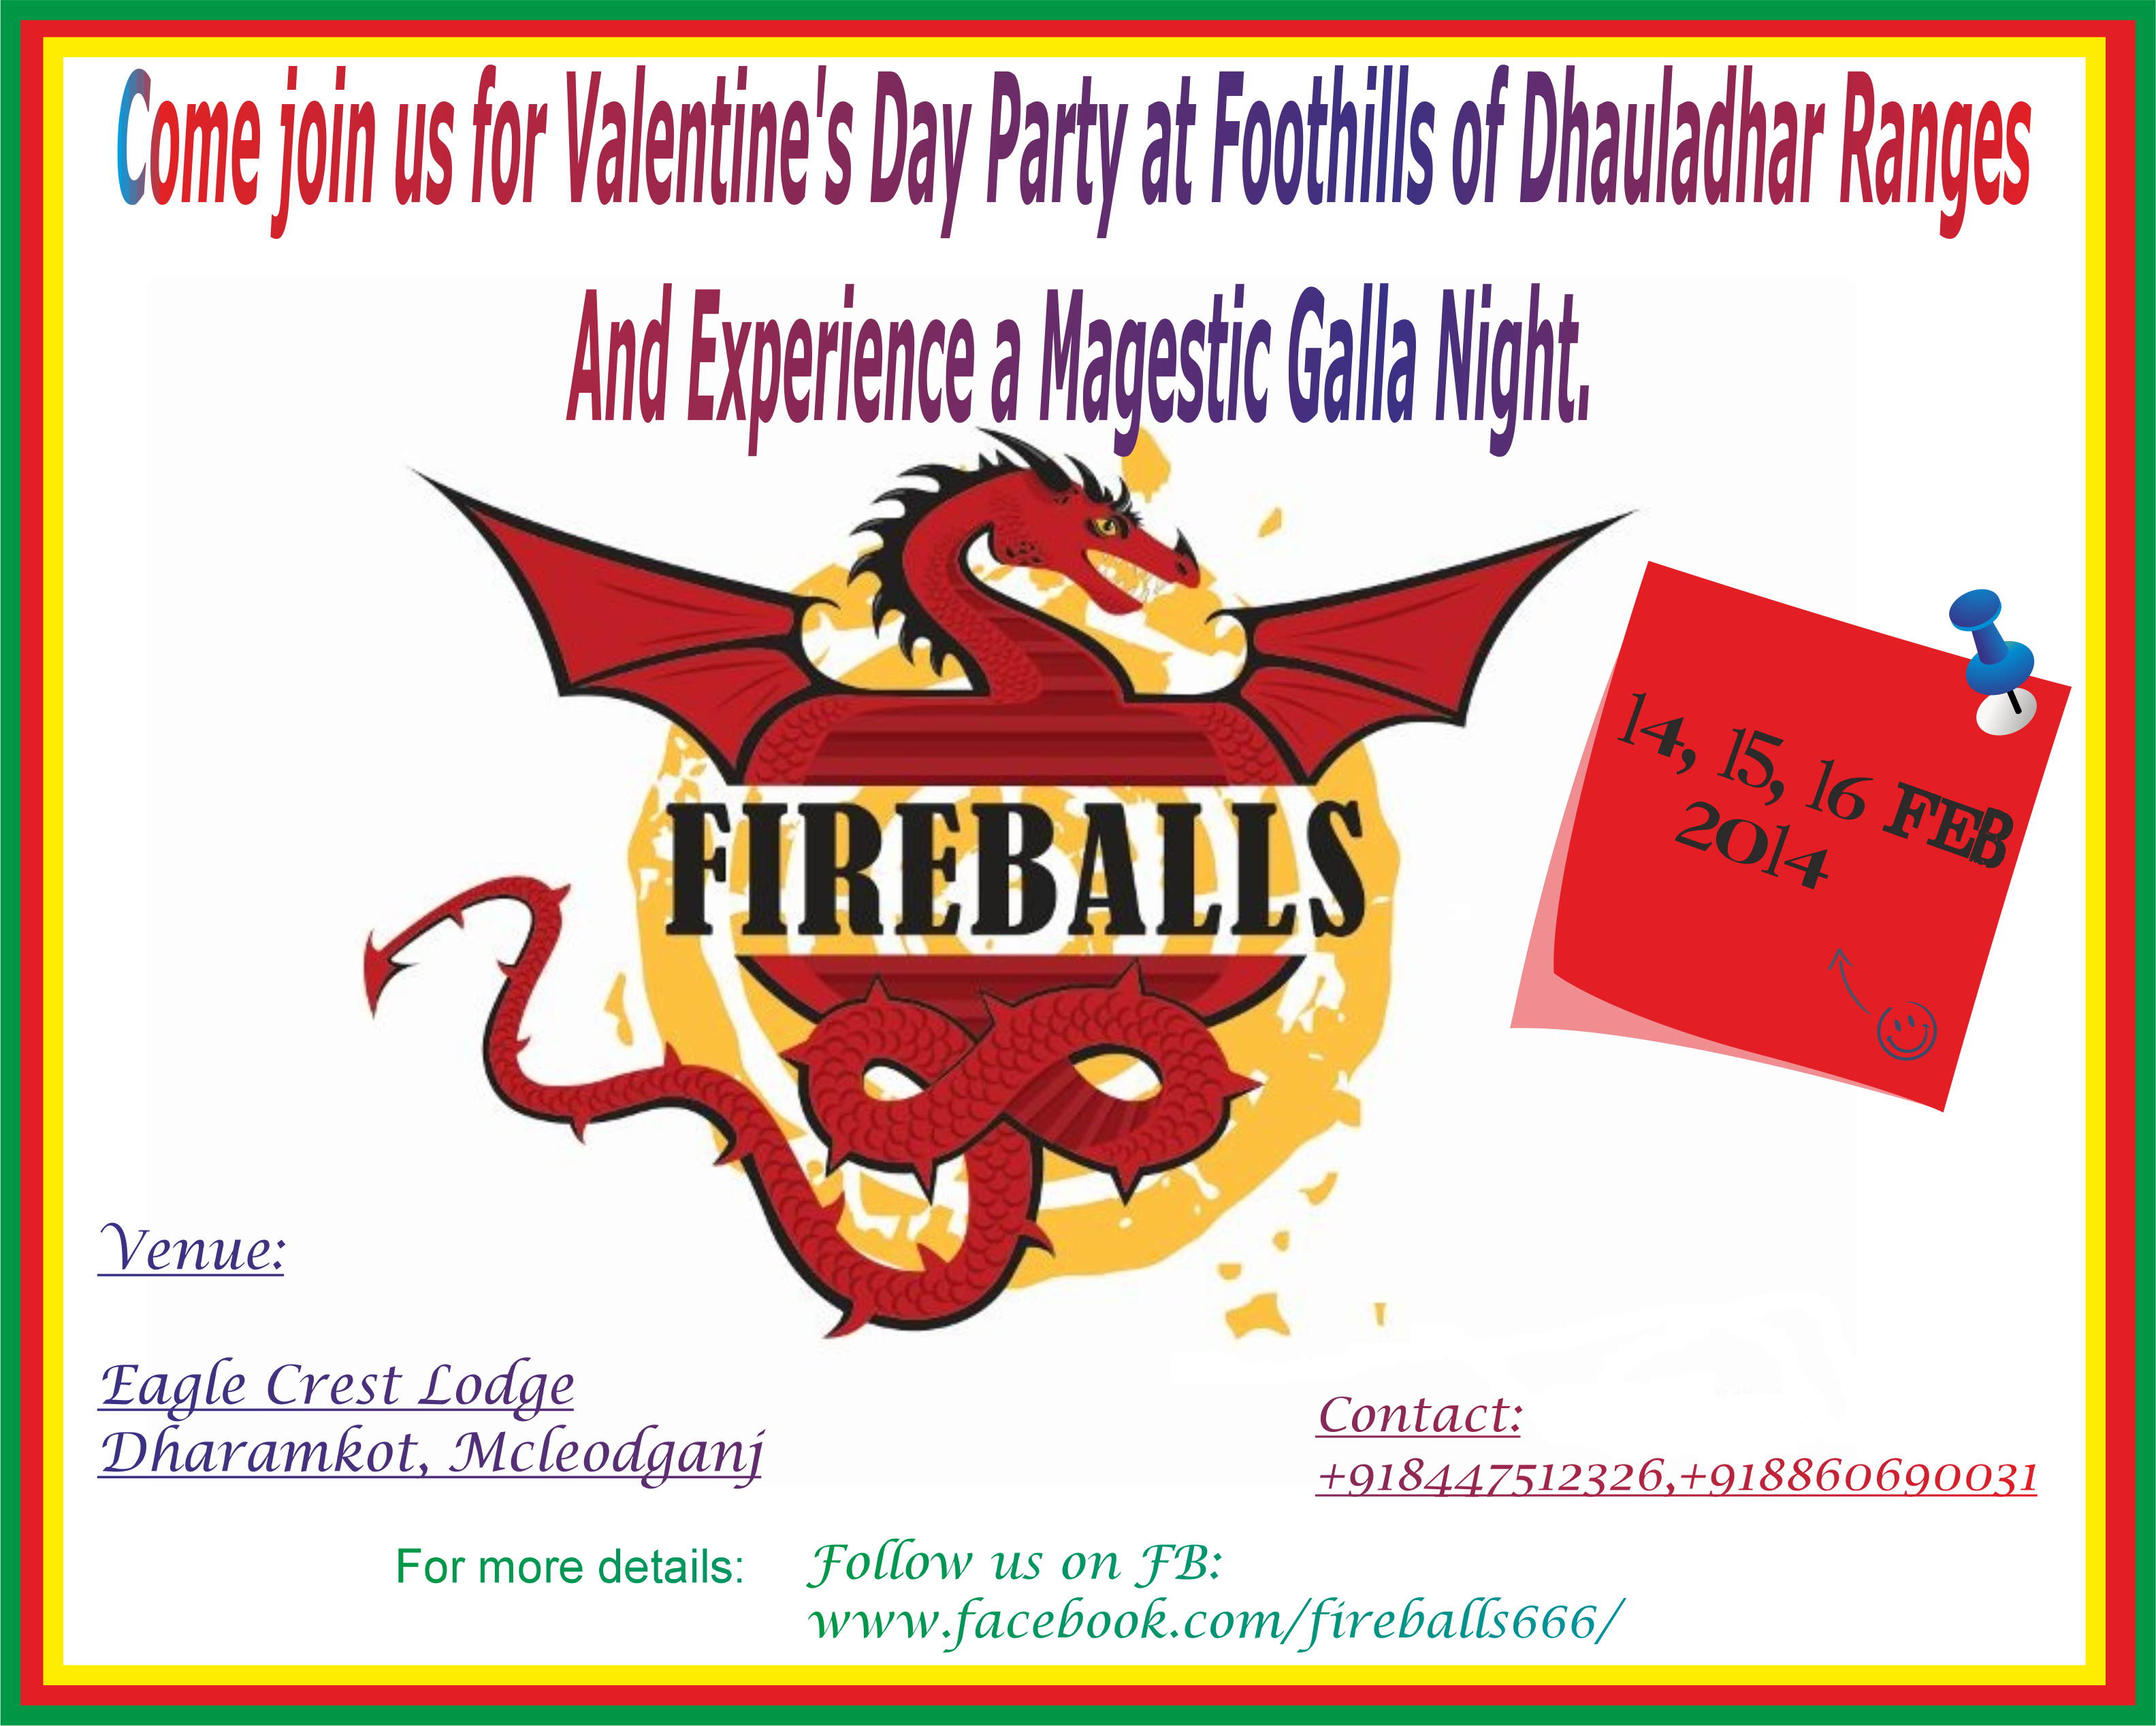 Valentine's Day Party at foothills of Dhauladhar mountains-Dhramkot,Mcleodganj